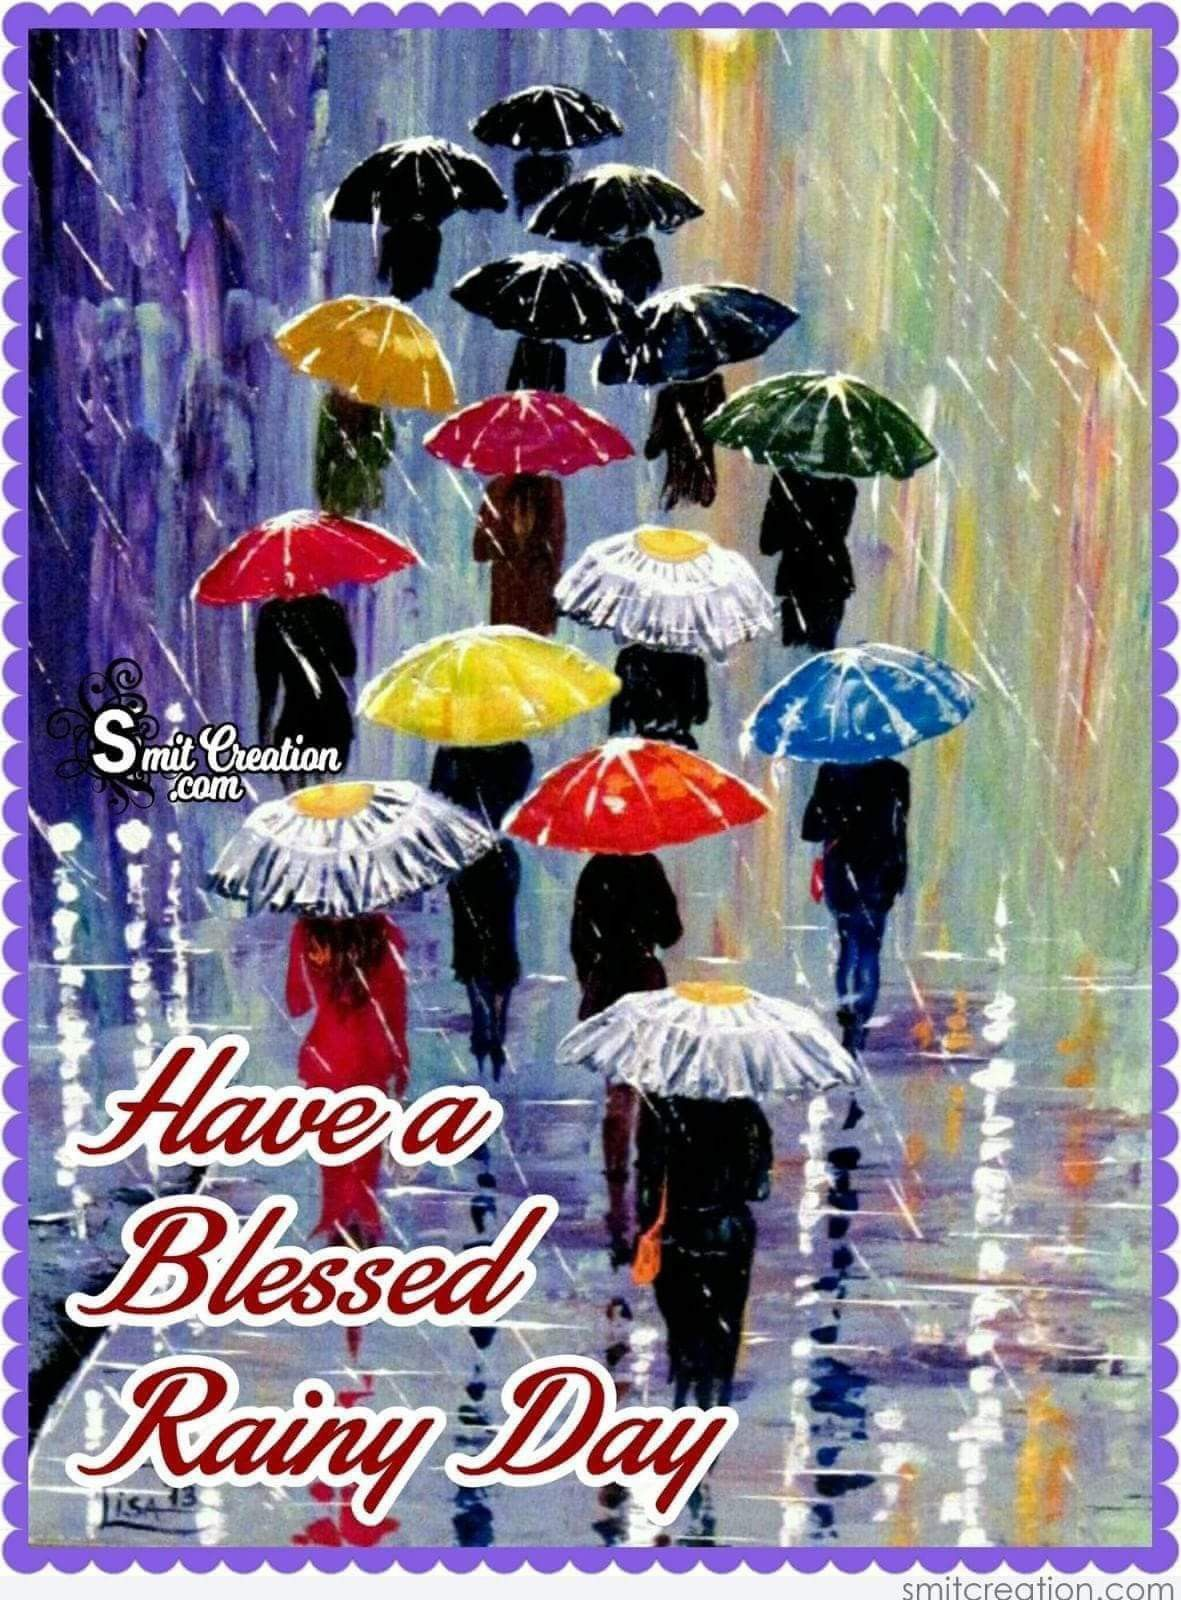 Pin By Setina Robinson On Your Pinterest Likes Rainy Good Morning Raining Day Quotes Morning Images